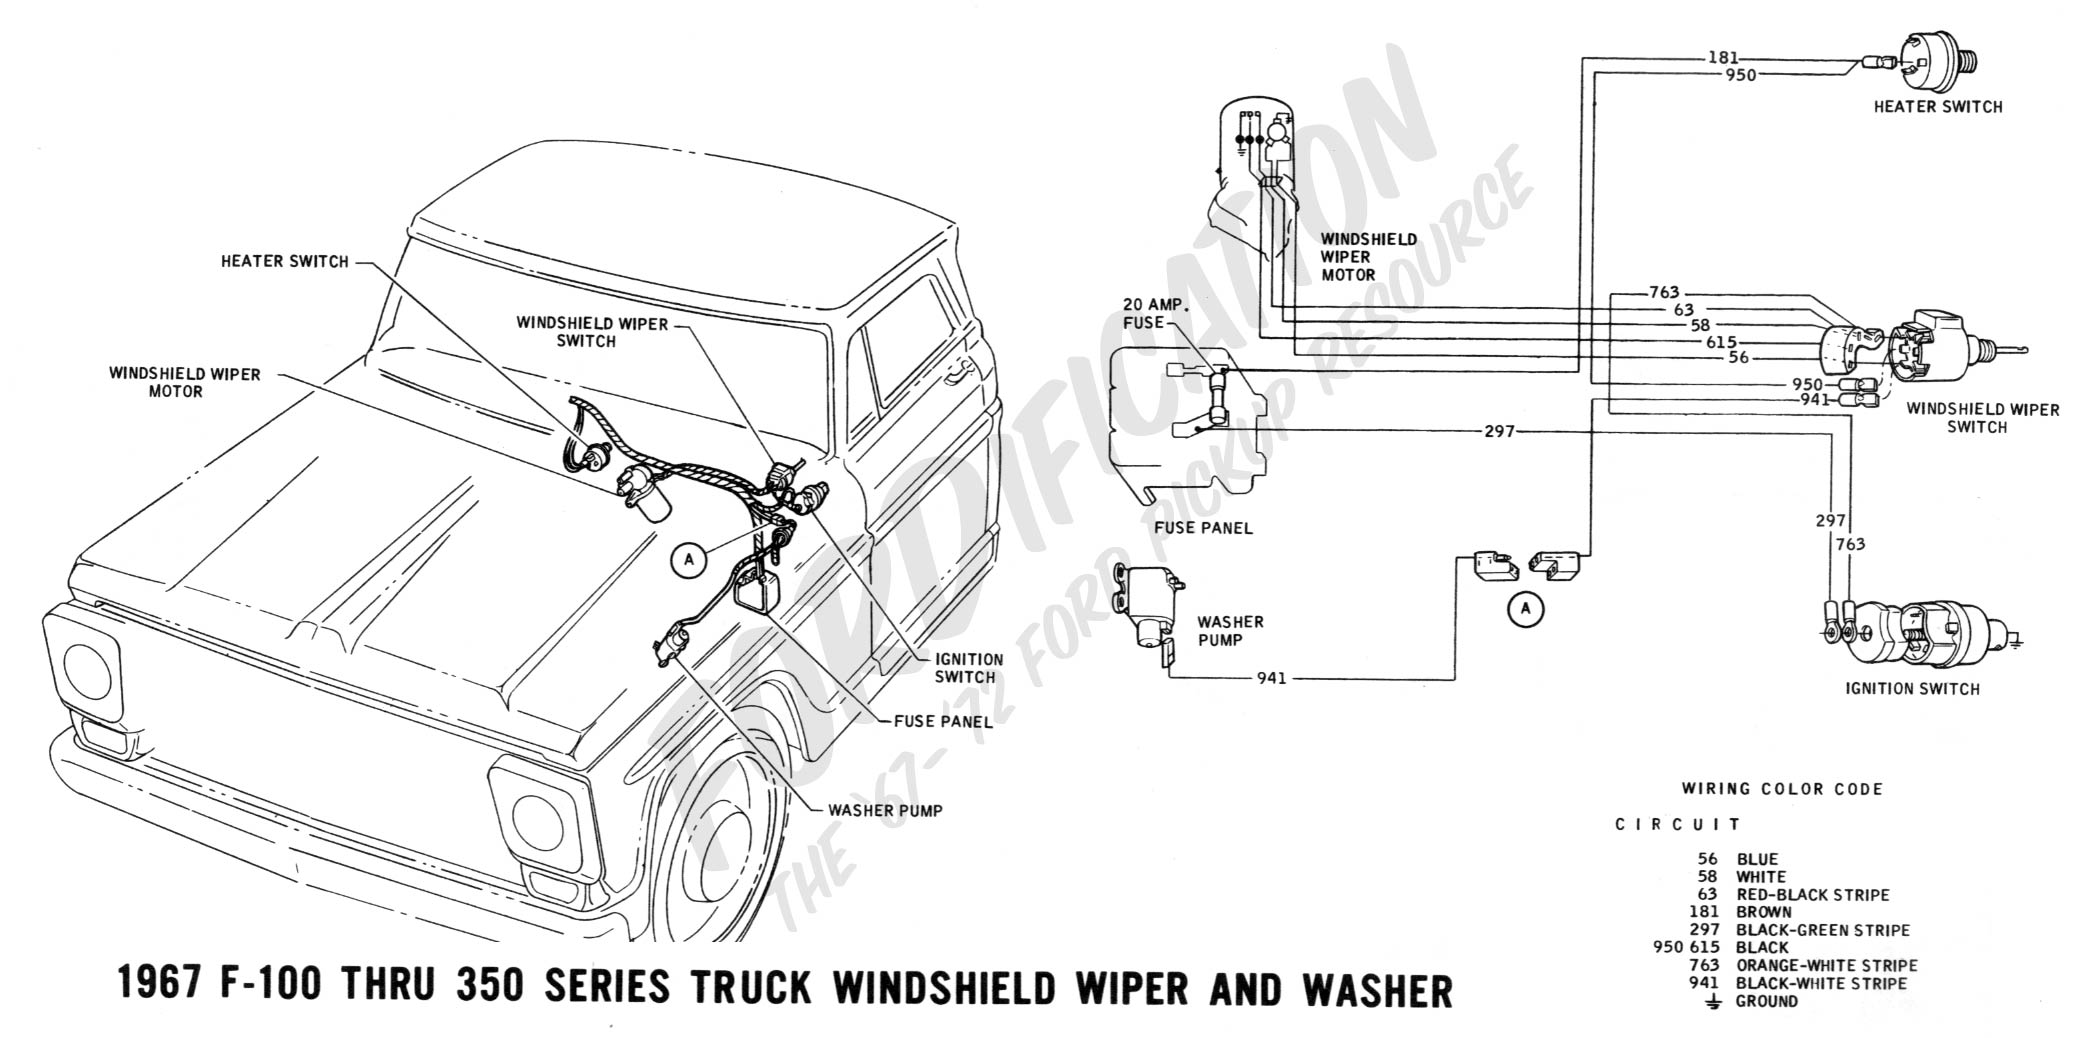 1972 Ford F100 Ignition Switch Wiring Diagram Starting Know About 1967 Images Gallery Truck Technical Drawings And Schematics Section H